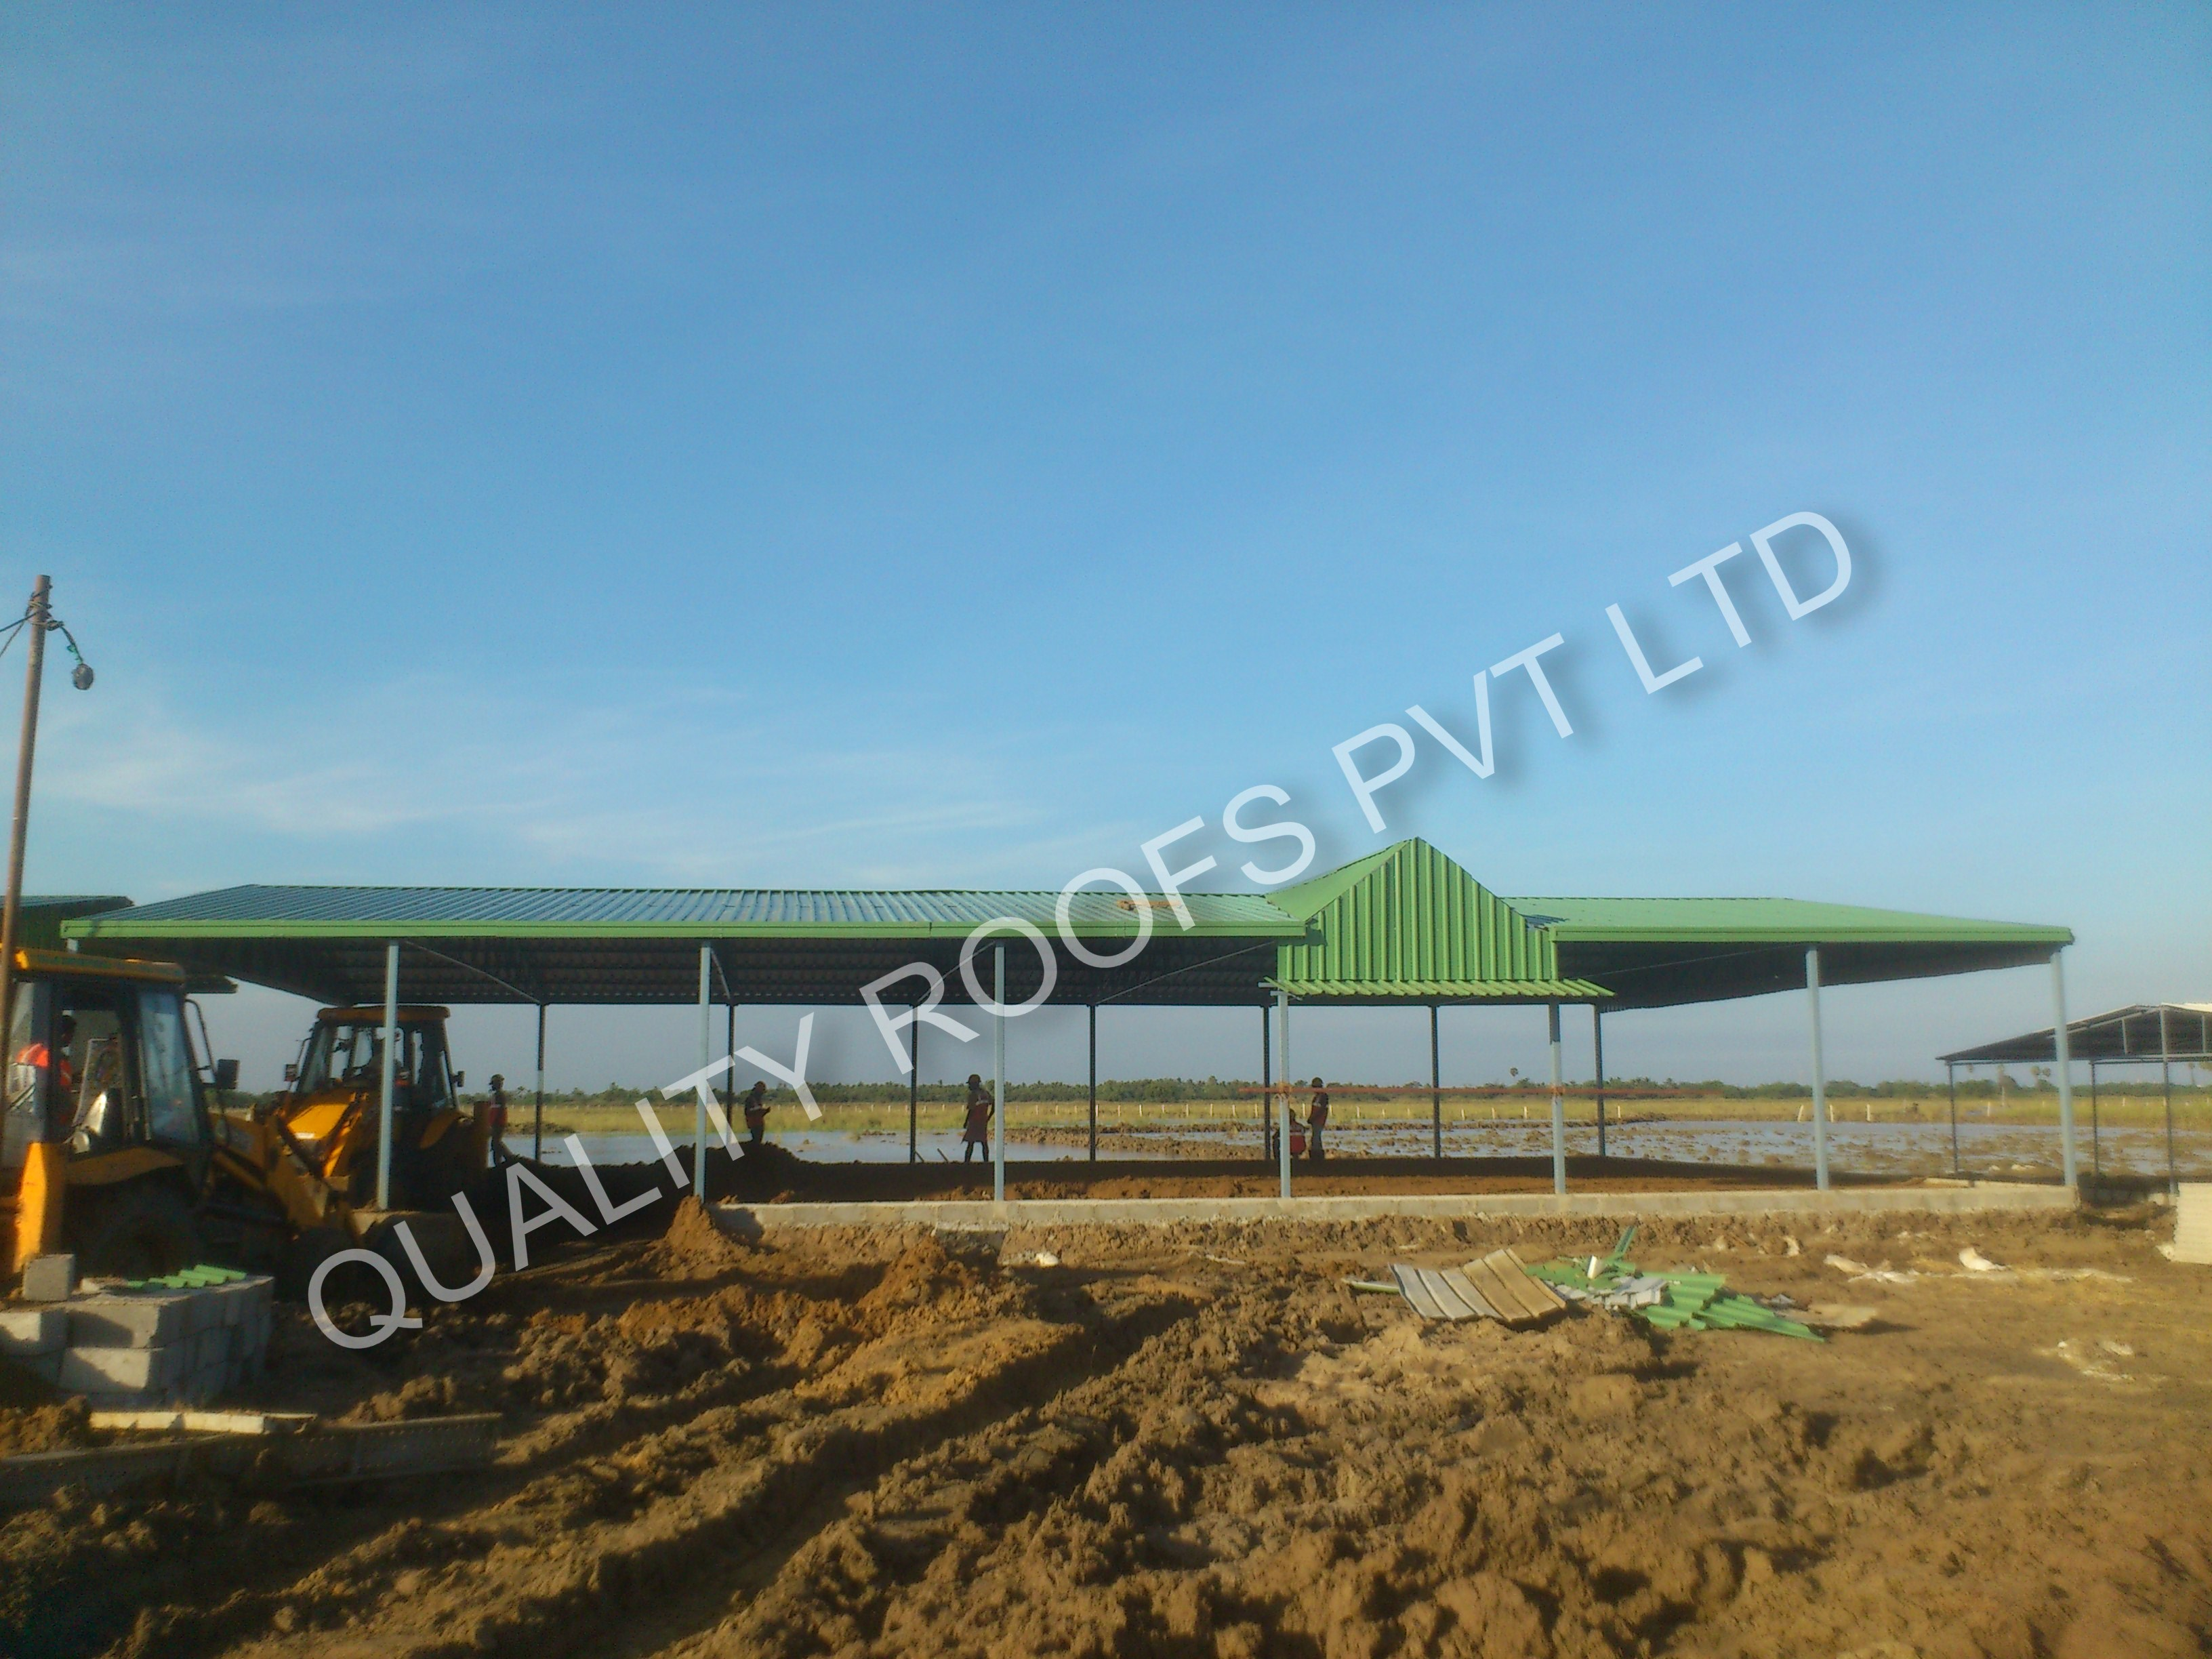 We are well established Commercial Roofing Contractors in Chennai. We handle all types of Roofing Services like Badminton Roofing, Steel Roofing, Puf Panel Roofing, metal roofing, Insulation roofing  etc., Our quality is the strength of our company to our professional ethic of providing a quality standard of Roofing Shed projects within the client's needs and budget. We aim to support and develop a tone and successful business through our quality and proper customer service.